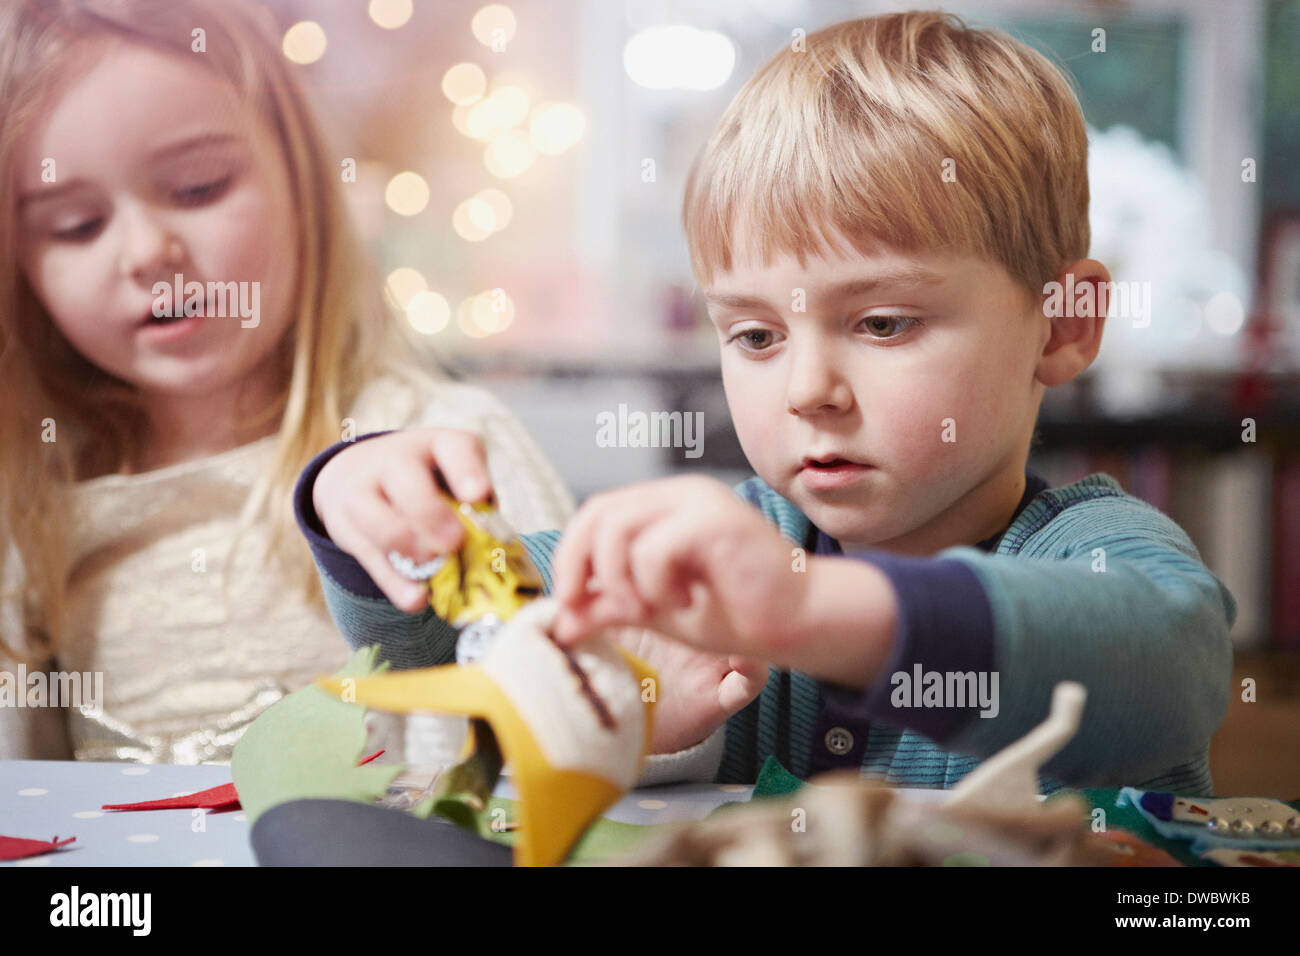 Young brother and sister crafting at kitchen table Stock Photo